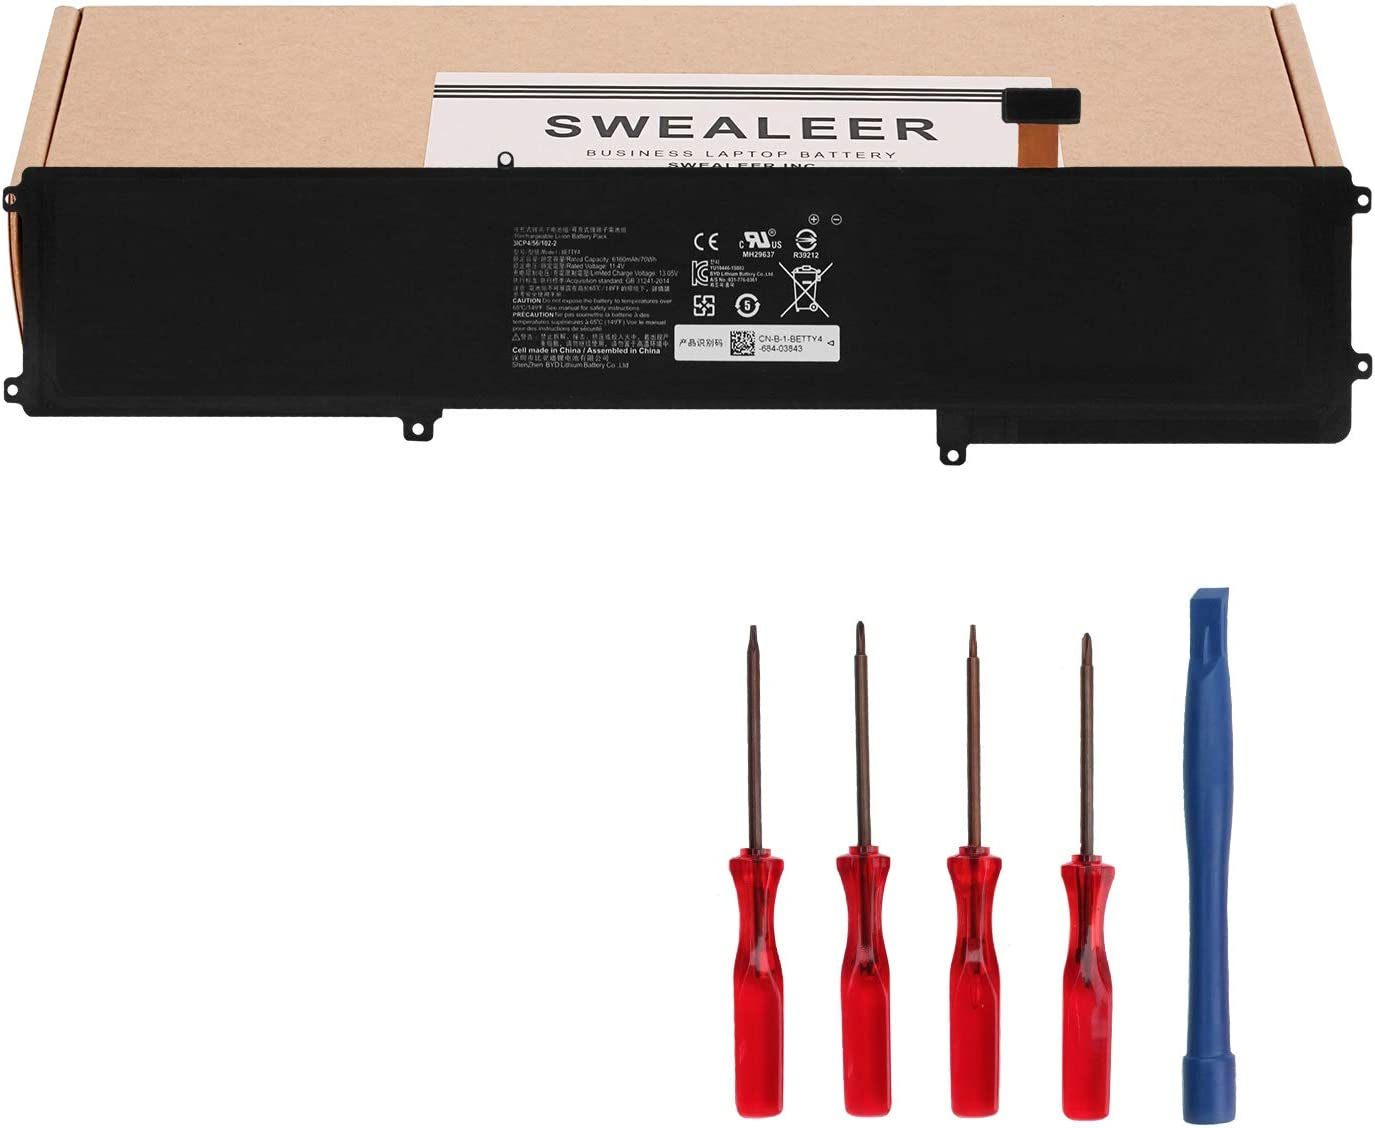 SWEALEER BETTY4 Laptop Battery Compatible with Razer Blade 2016 14